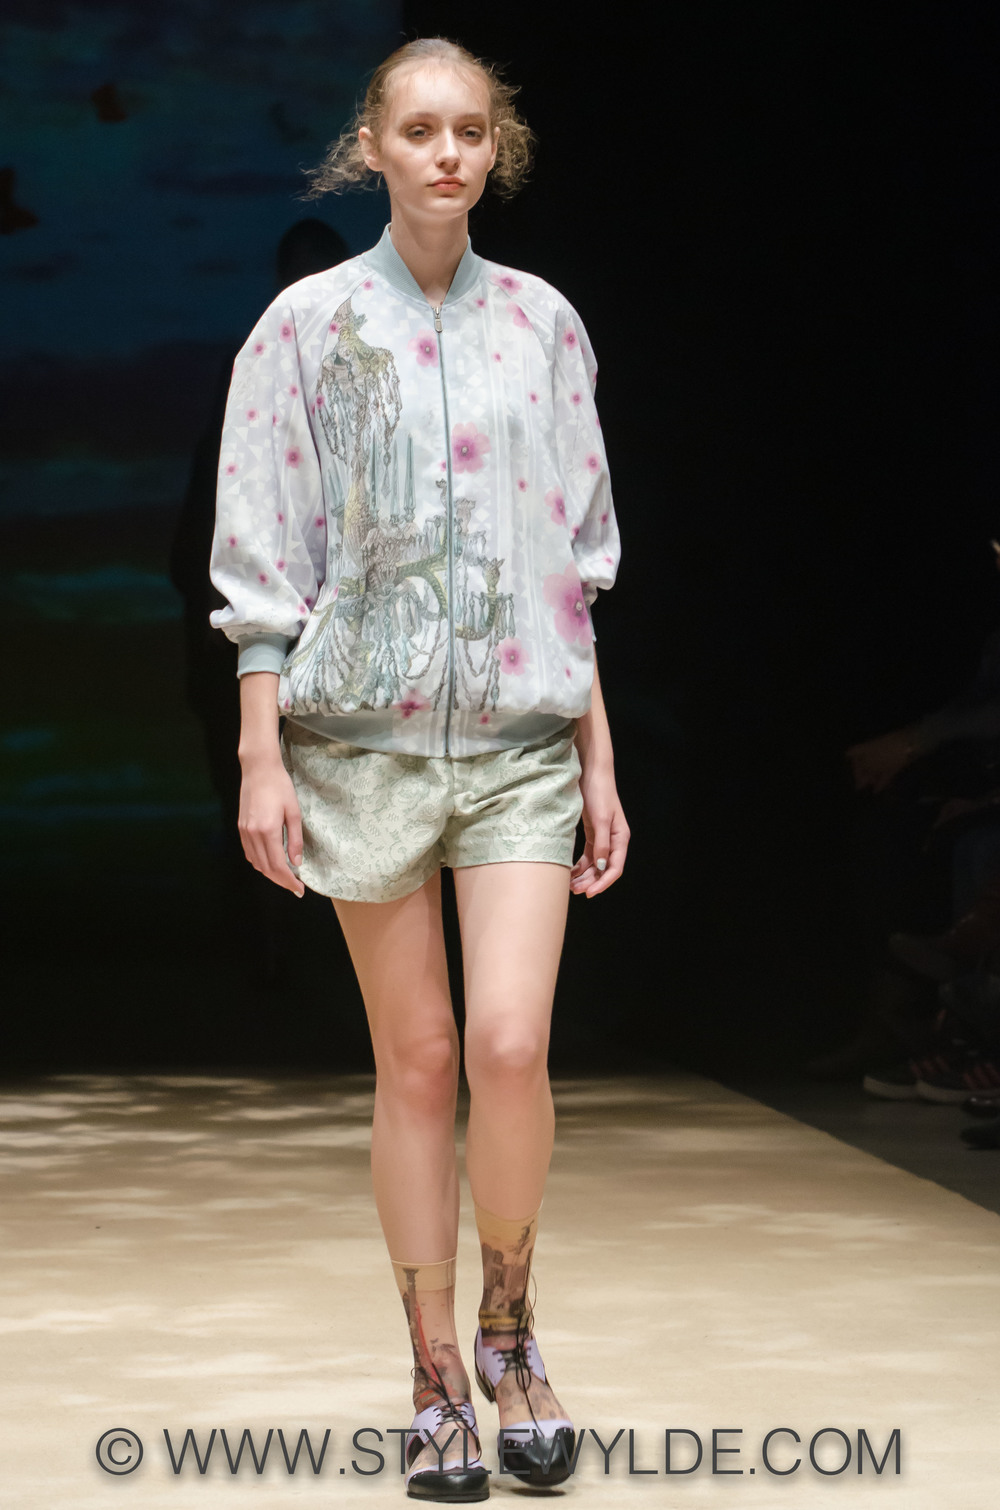 StyleWylde_InProcess_SS2014 (1 of 1)-9.jpg